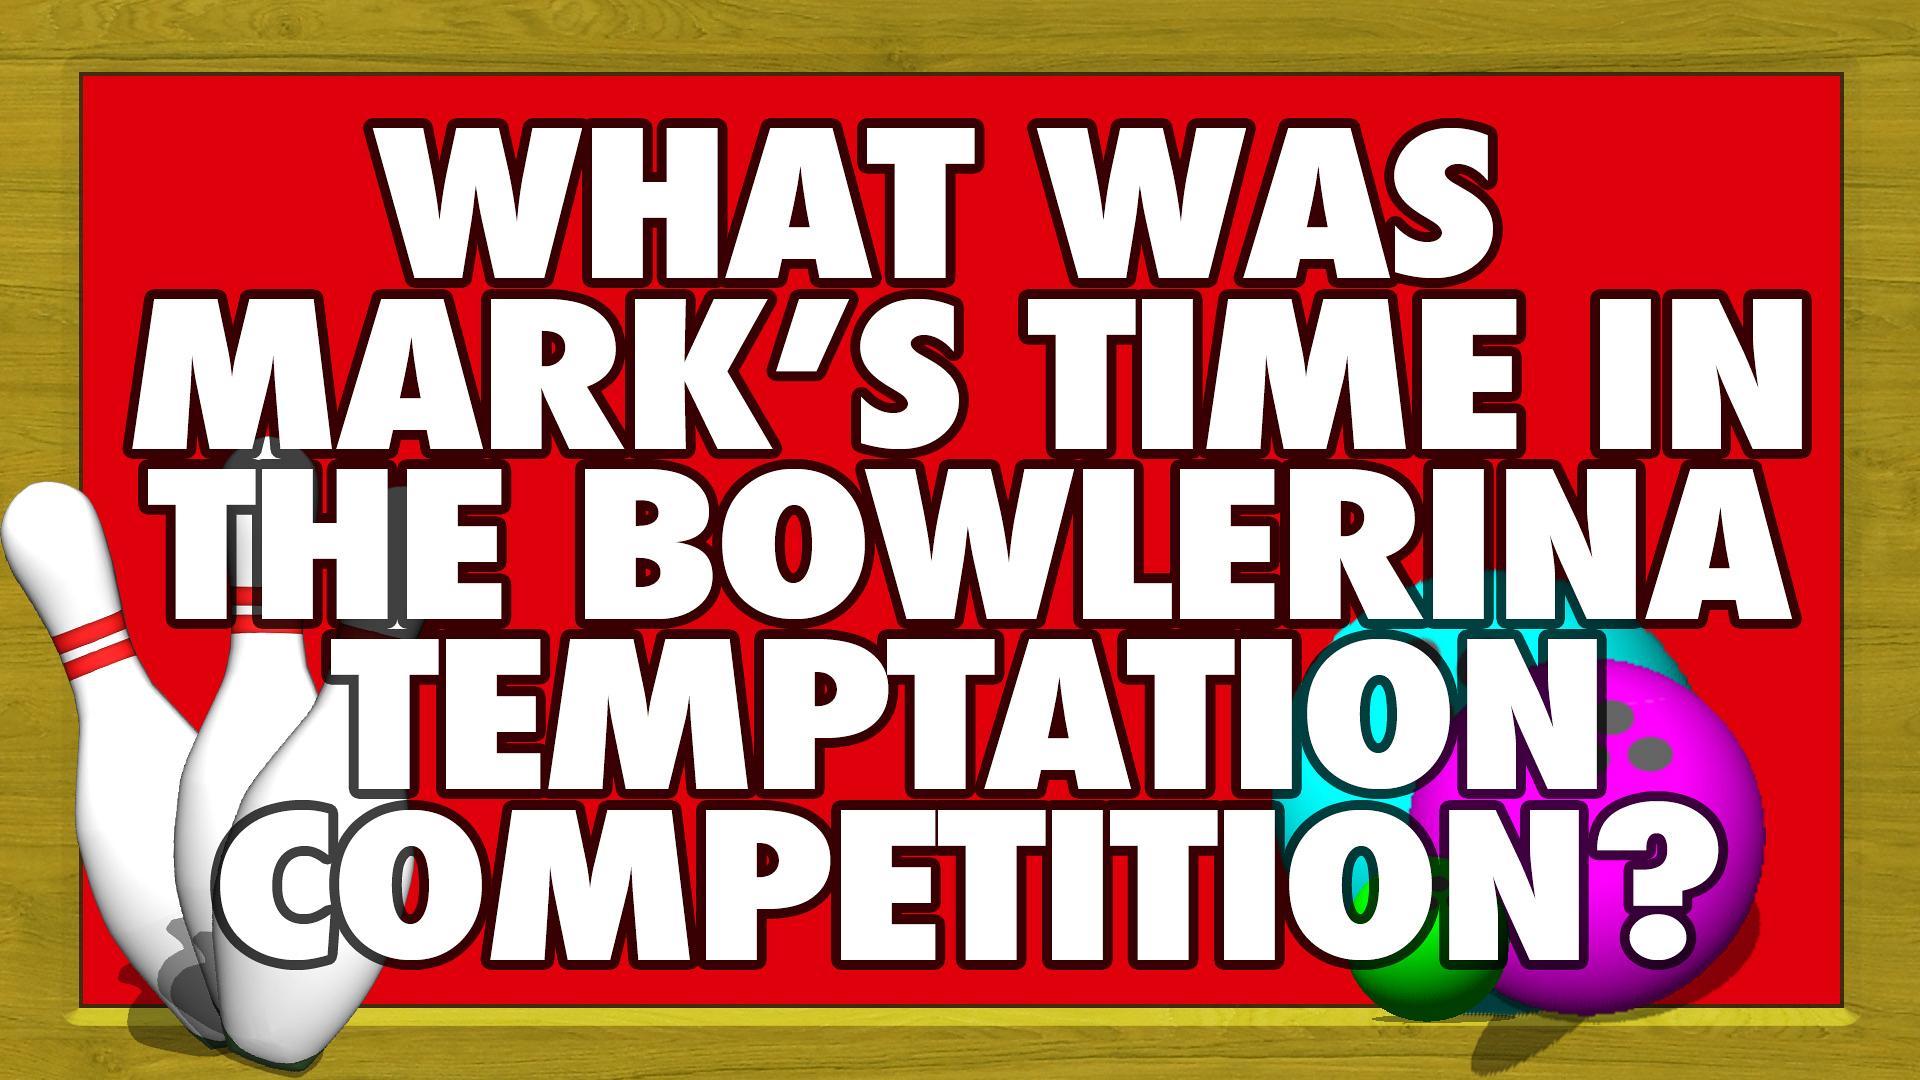 What was Mark's time in the Bowlerina Temptation Competition?